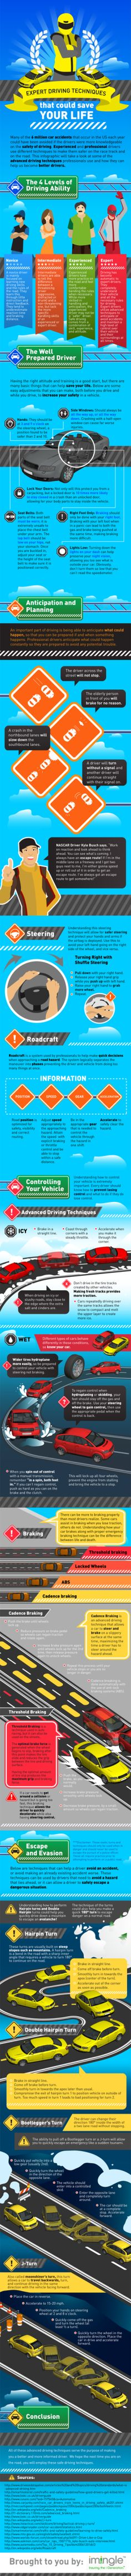 A very comprehensive info that could help drive us to better road safety! Useful for the Asdan road safety awareness short course. (Cool Cars For Teens) Car Insurance Tips, Safe Driving Tips, Driving Safety, Road Safety Tips, Save Your Life, Drivers Ed, Safety Awareness, Teen Driver, Best Practice